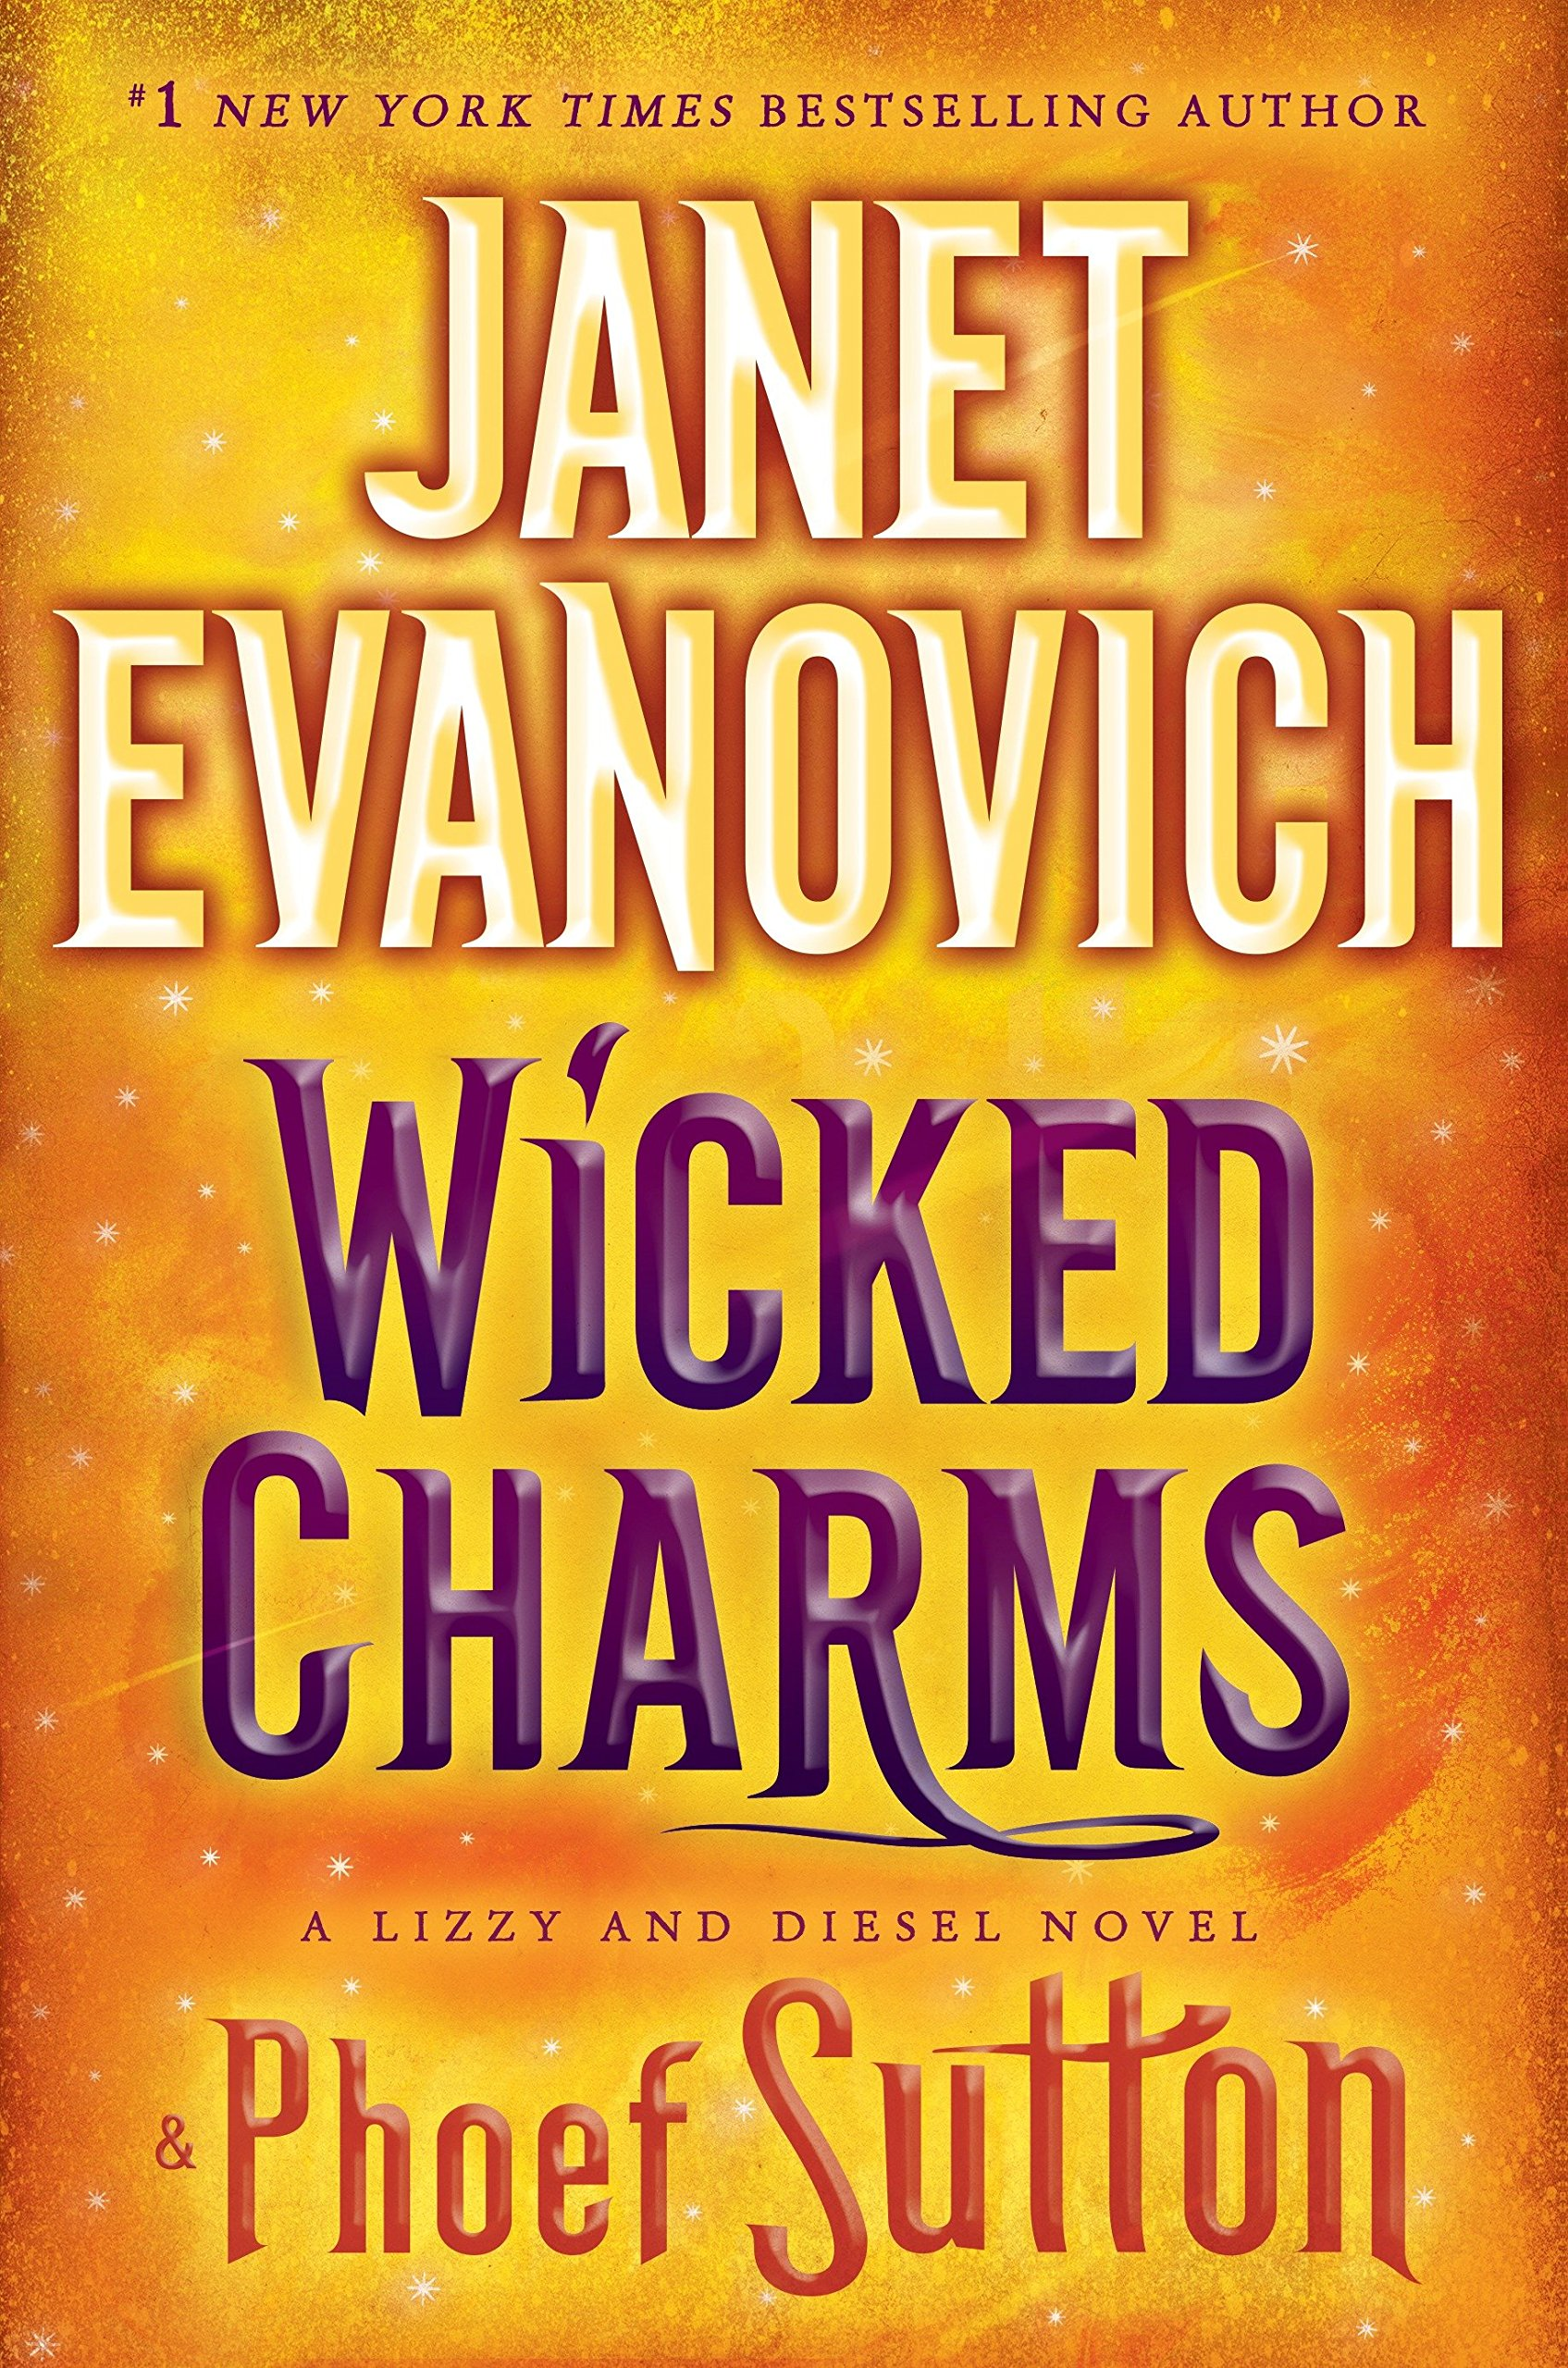 Download Wicked Charms (Lizzy & Diesel) PDF